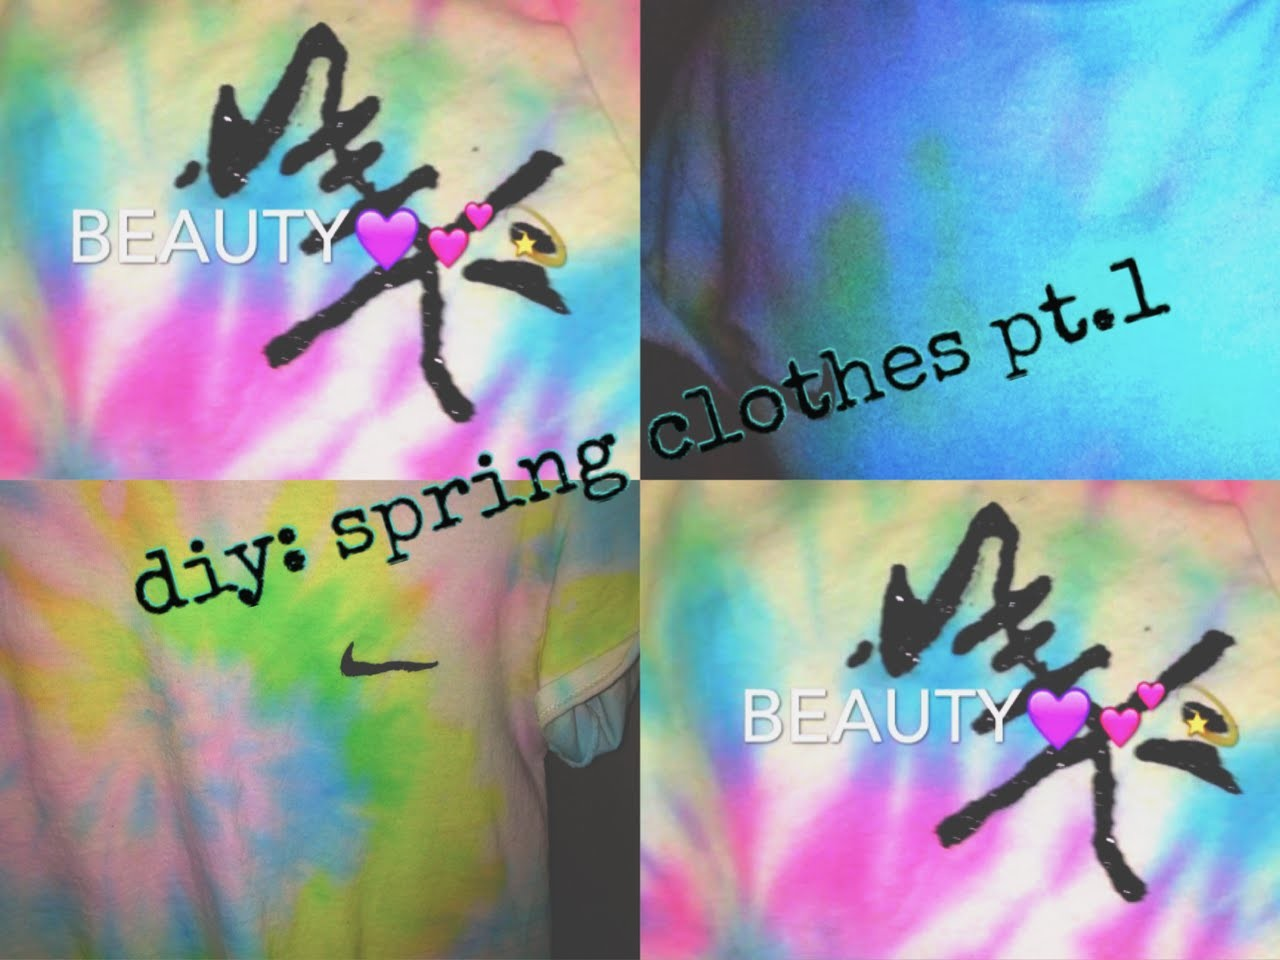 Diy: spring clothes pt.1.graphic t-shirt | kennxelizabeth